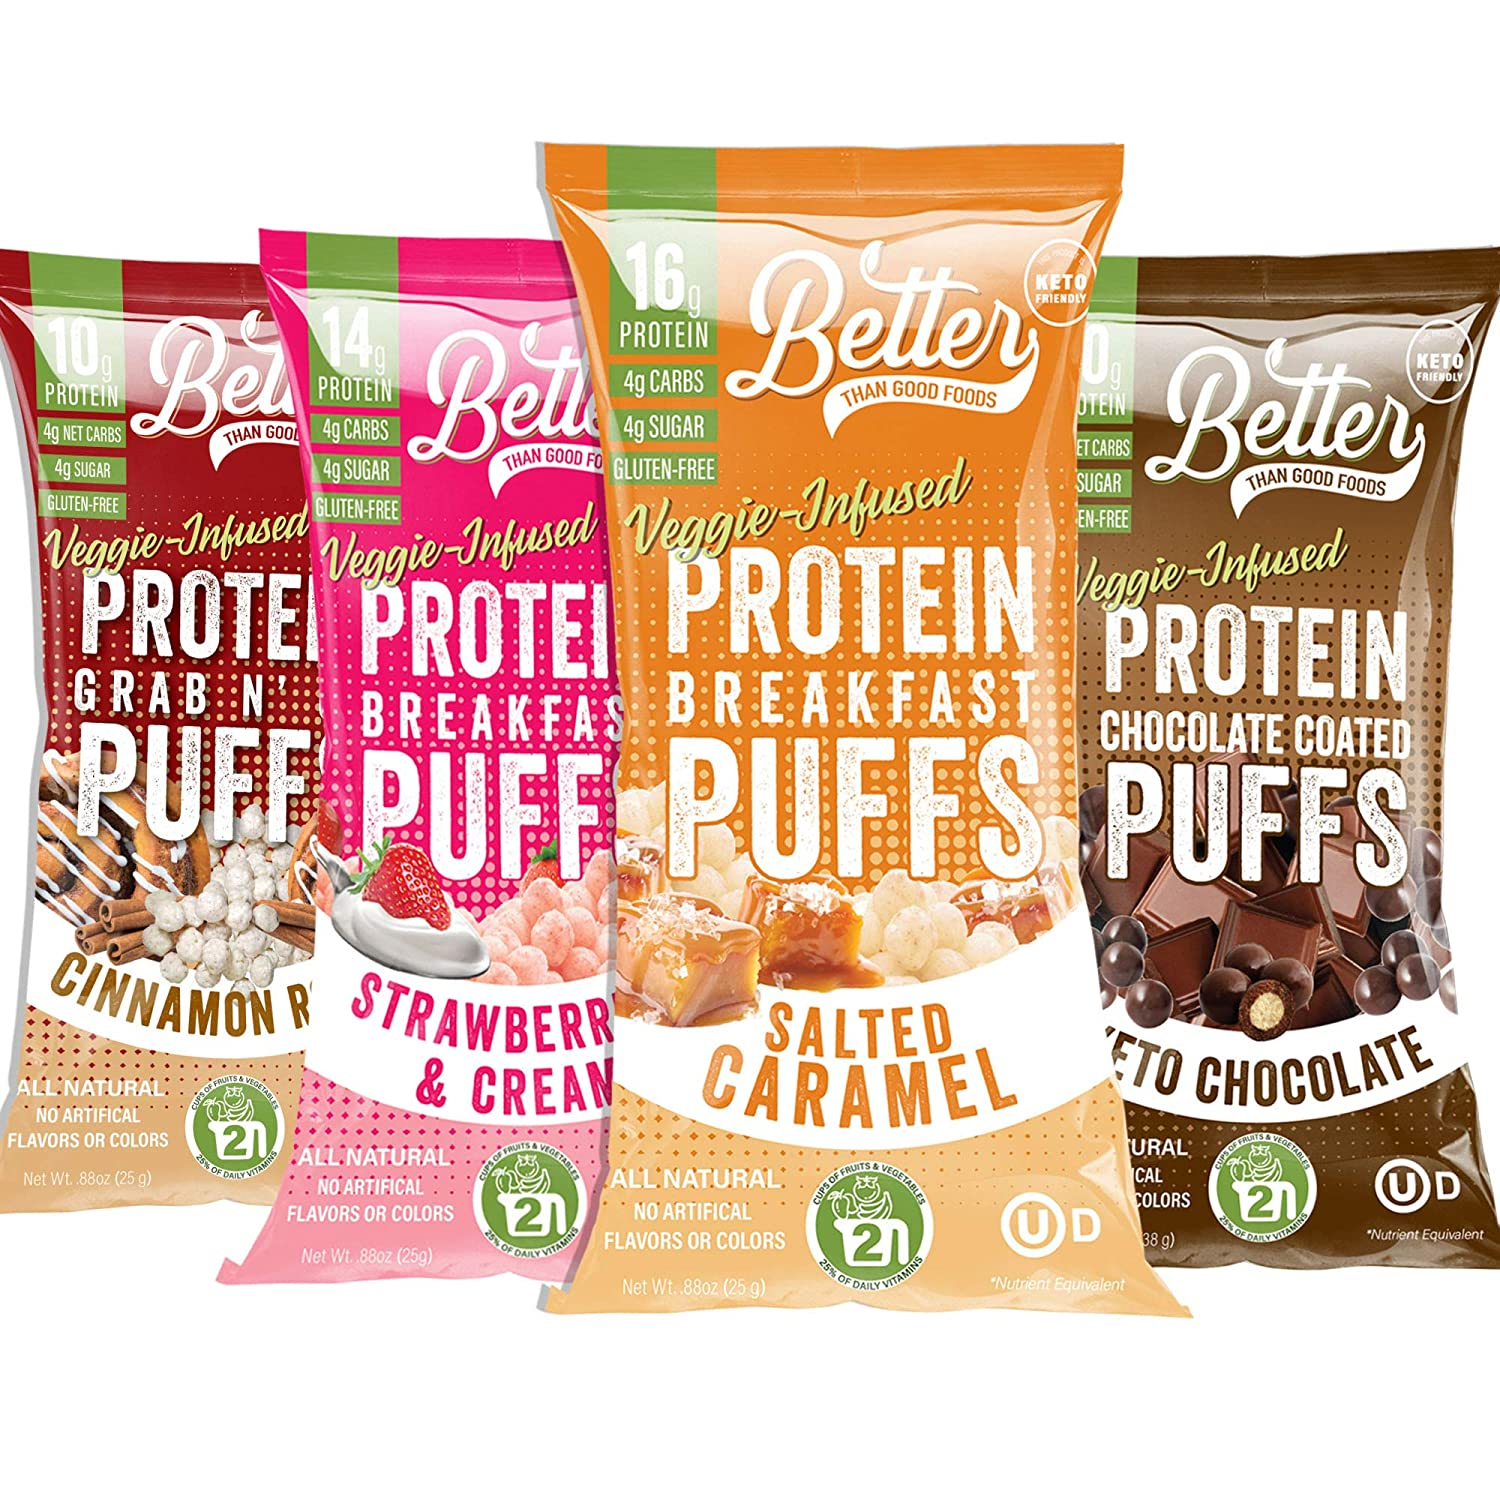 New BETTER THAN GOOD Keto Protein Puffs | 16g Protein, 2 Servings of Fruits & Veggies | Paleo, Low Sugar, Low Calories, Gluten Free, Diabetic Friendly Keto Snacks (Sweet Sampler 4 pack)